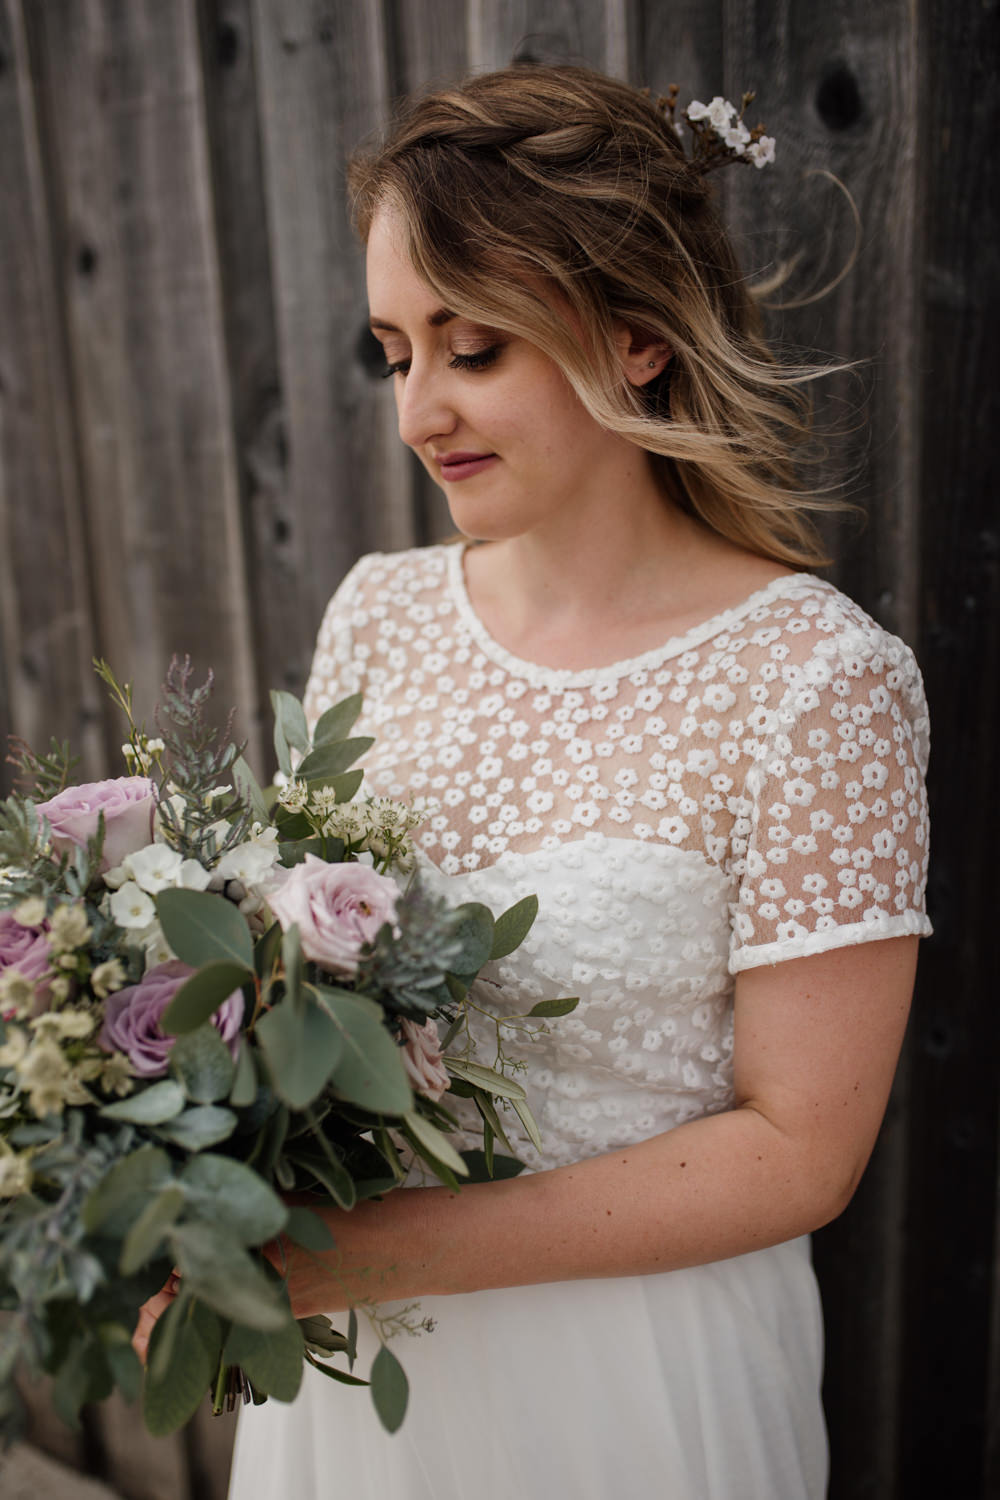 Bride Bridal Separates V Back Lace Top Tulle Skirt Bouquet Eucalyptus Pink Rose Greenery Barn Brynich Wedding Magda K Photography